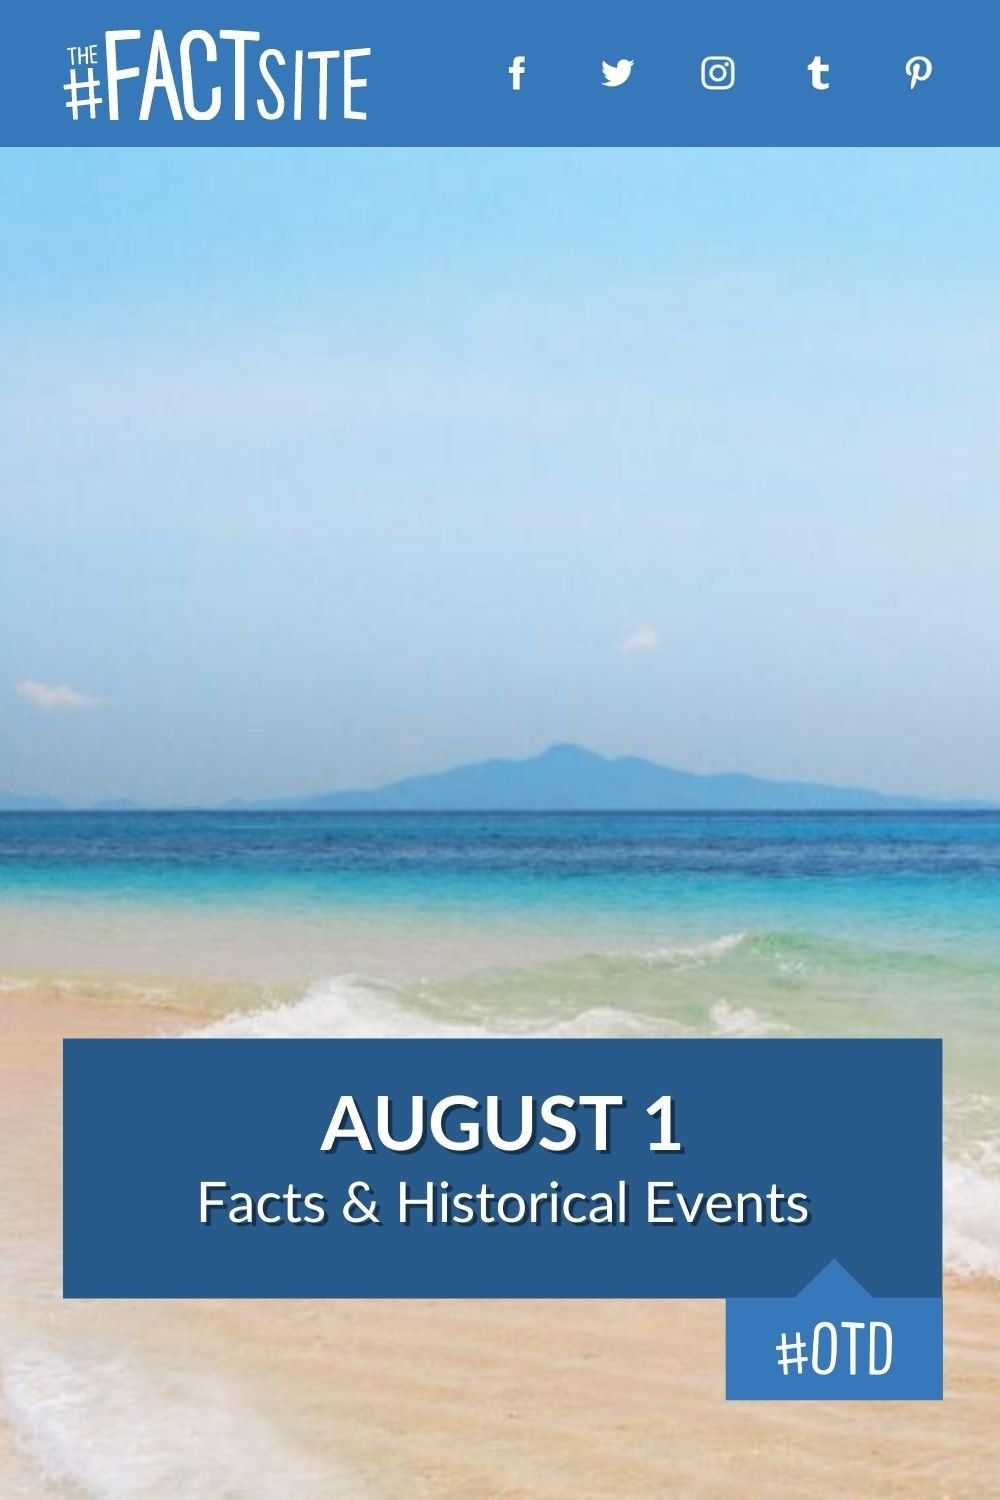 Facts & Historic Events That Happened on August 1